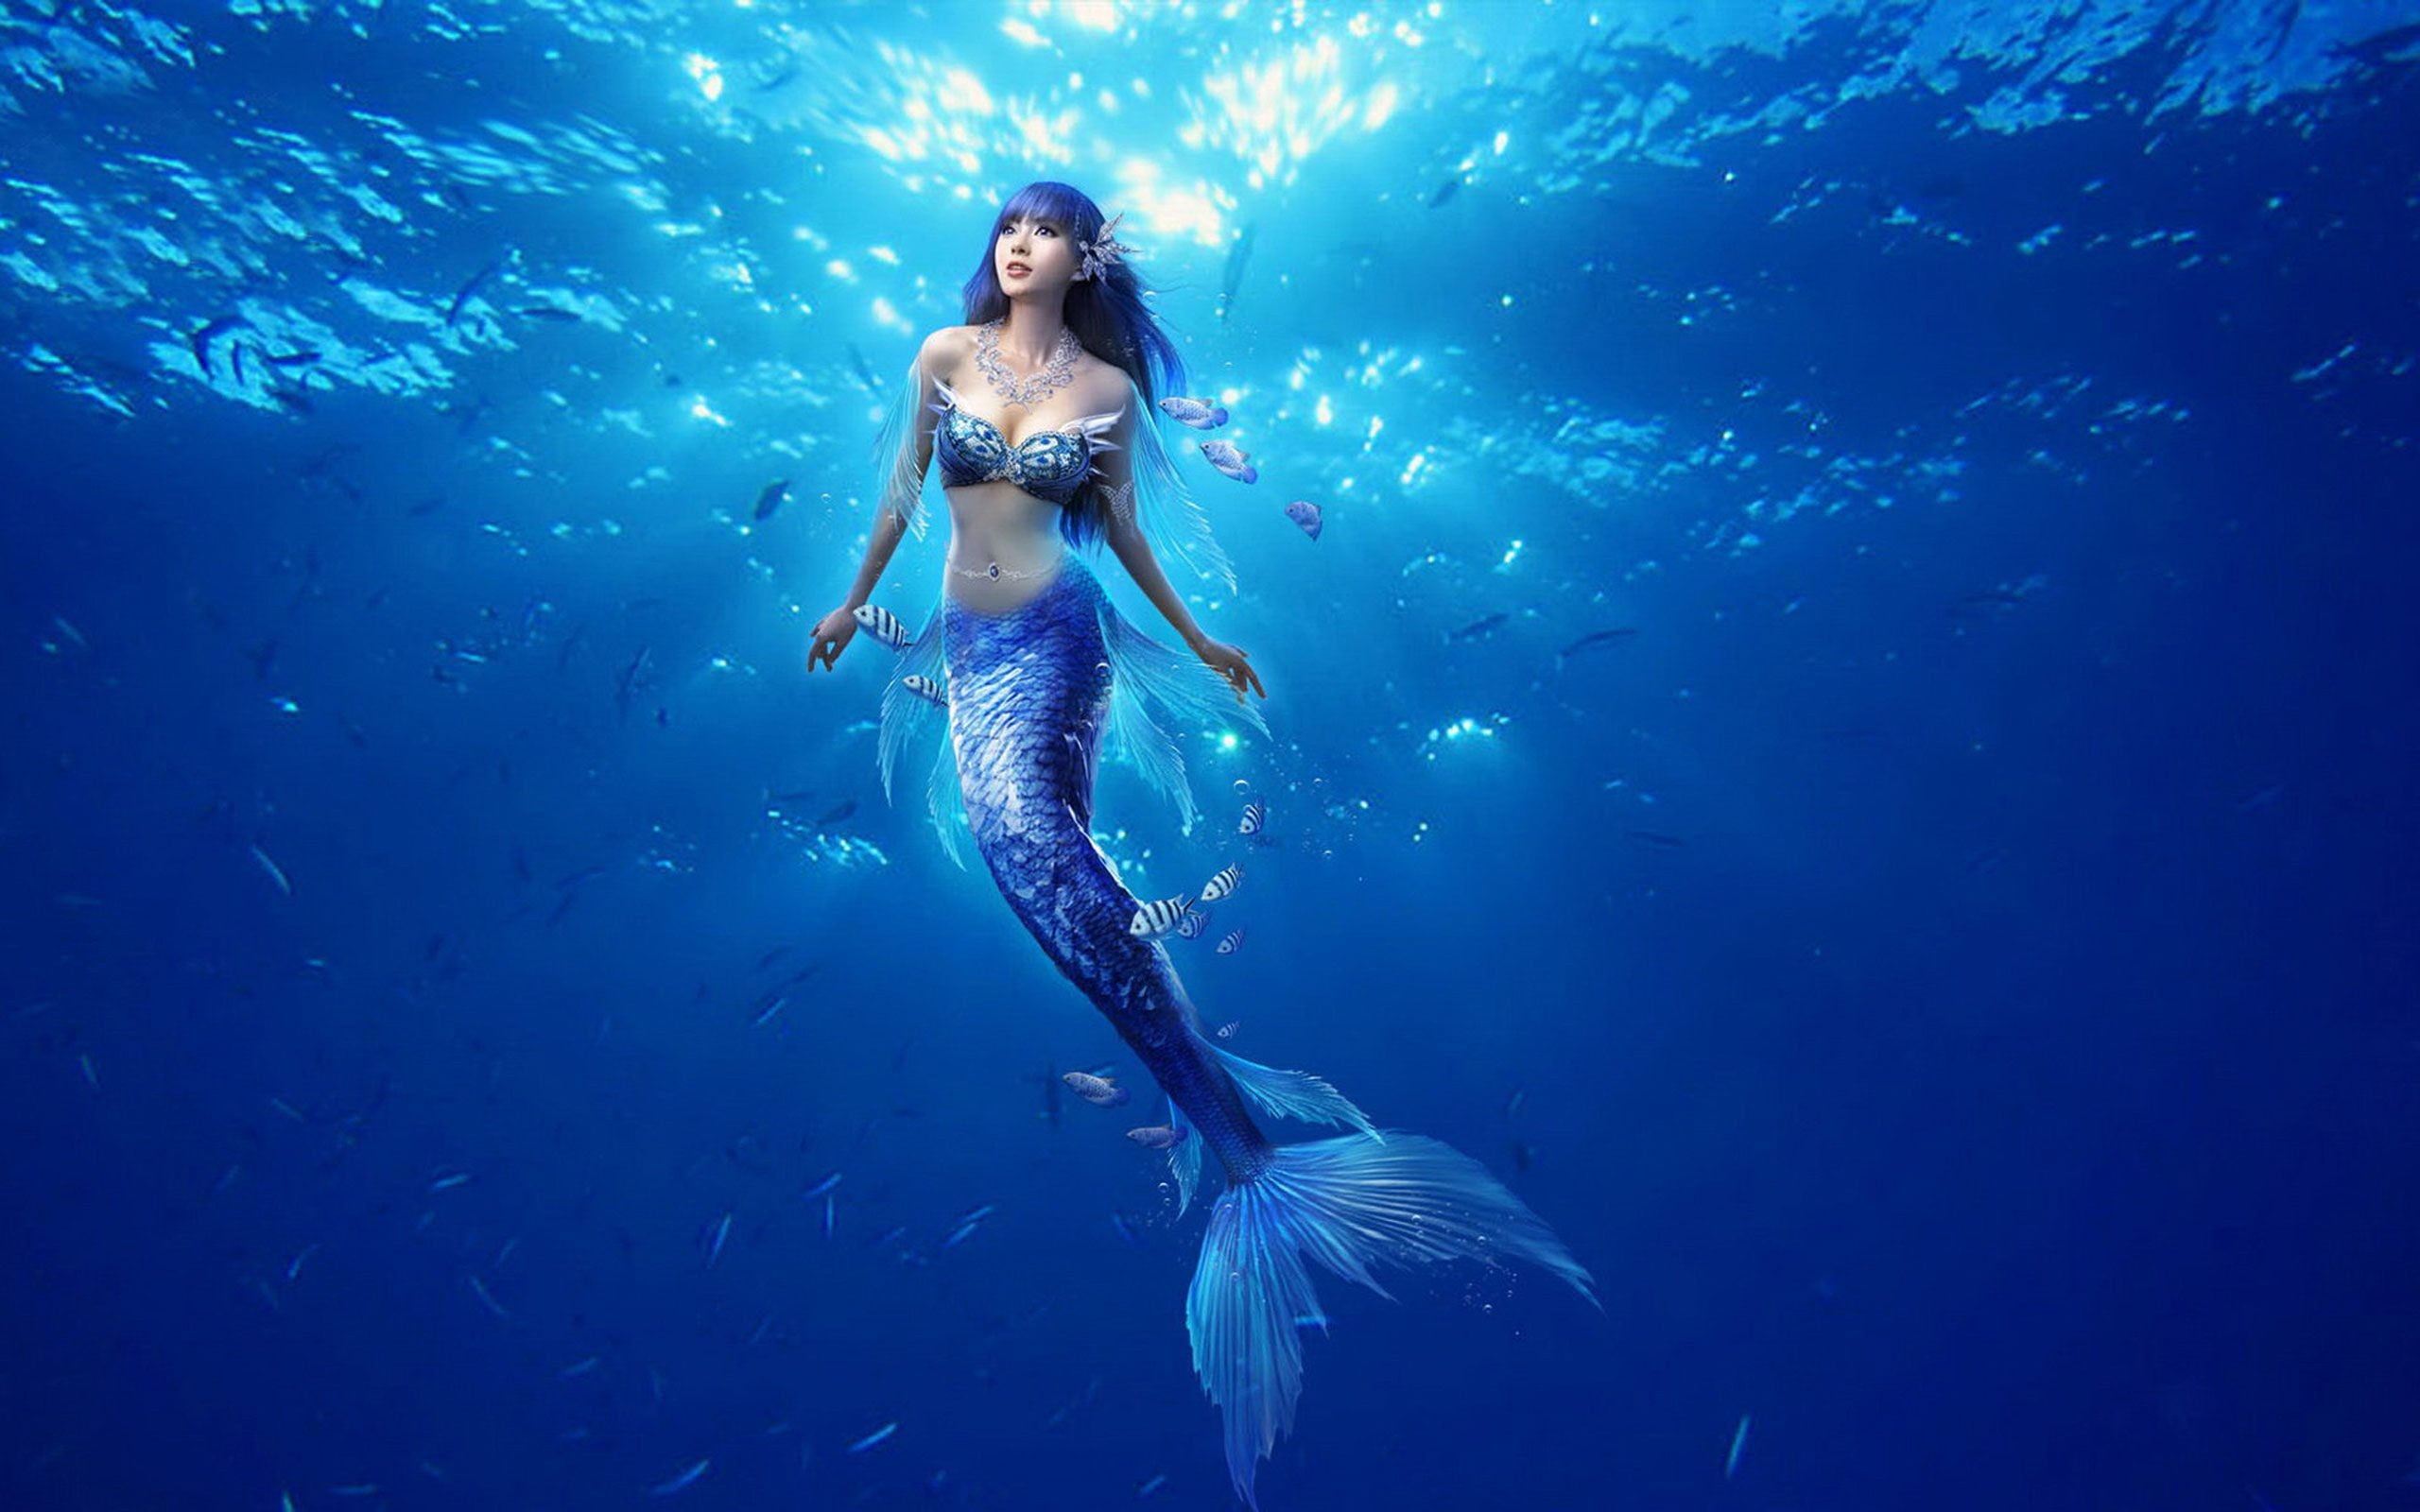 mermaid background 183�� download free stunning full hd